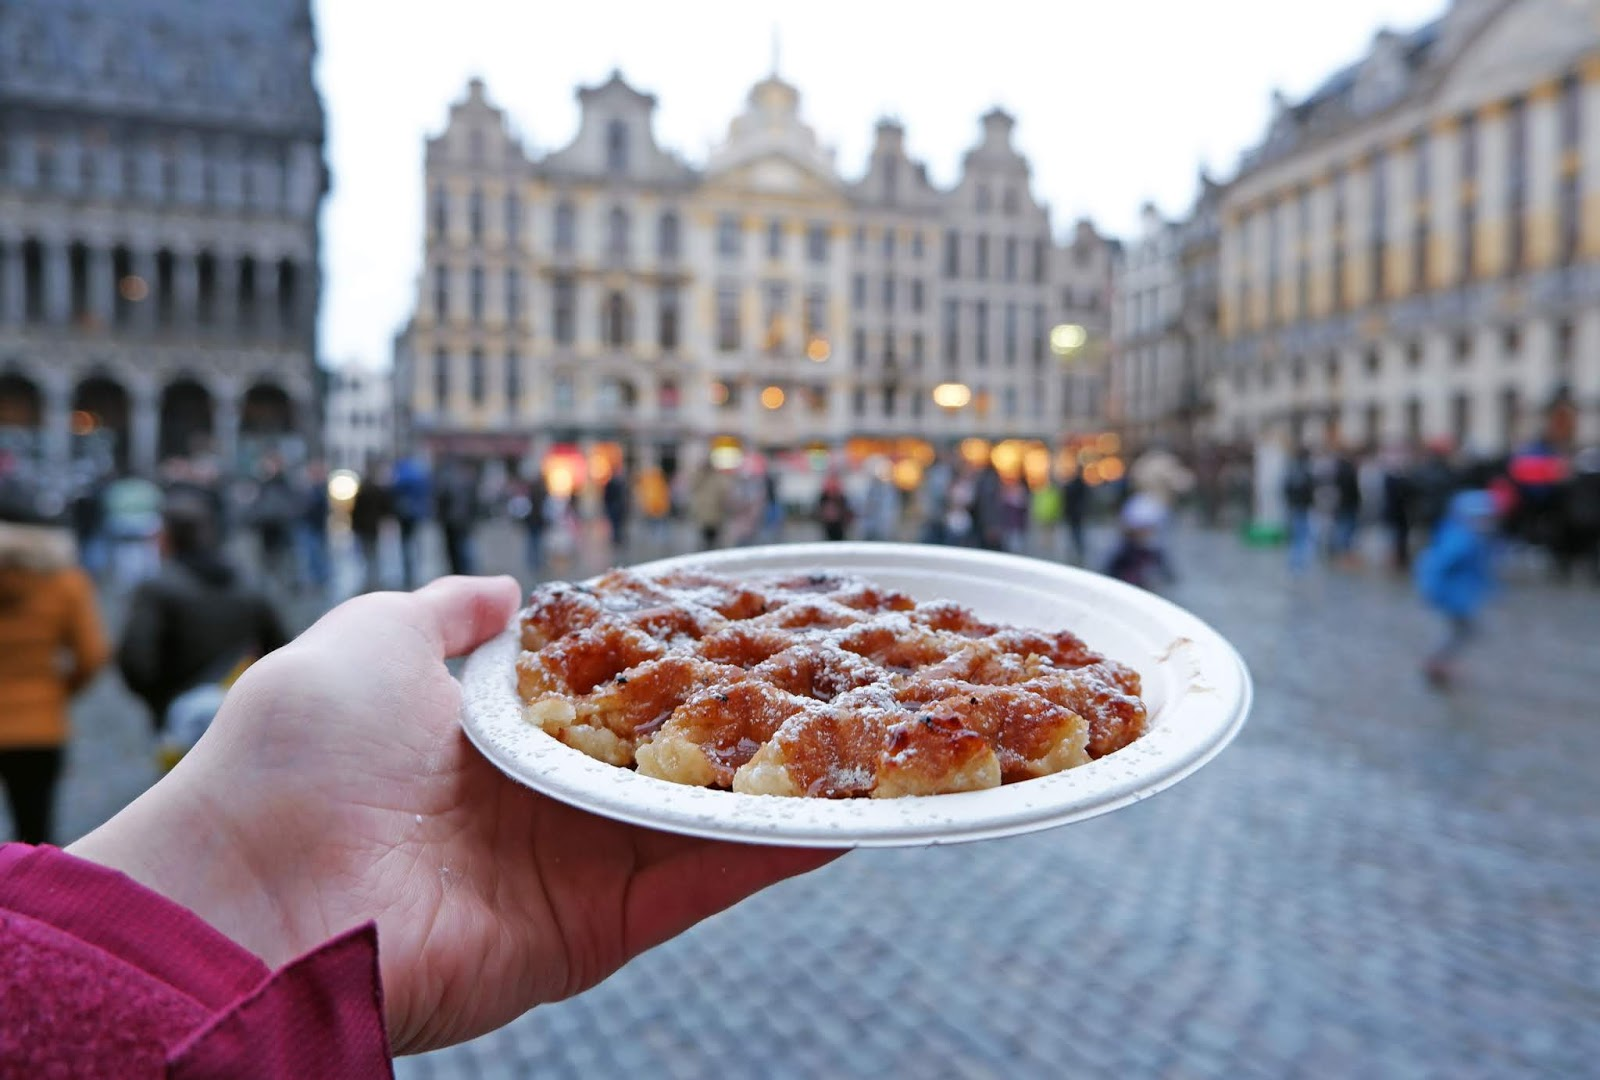 Eating a Liege waffle in the Grand Place, Brussels